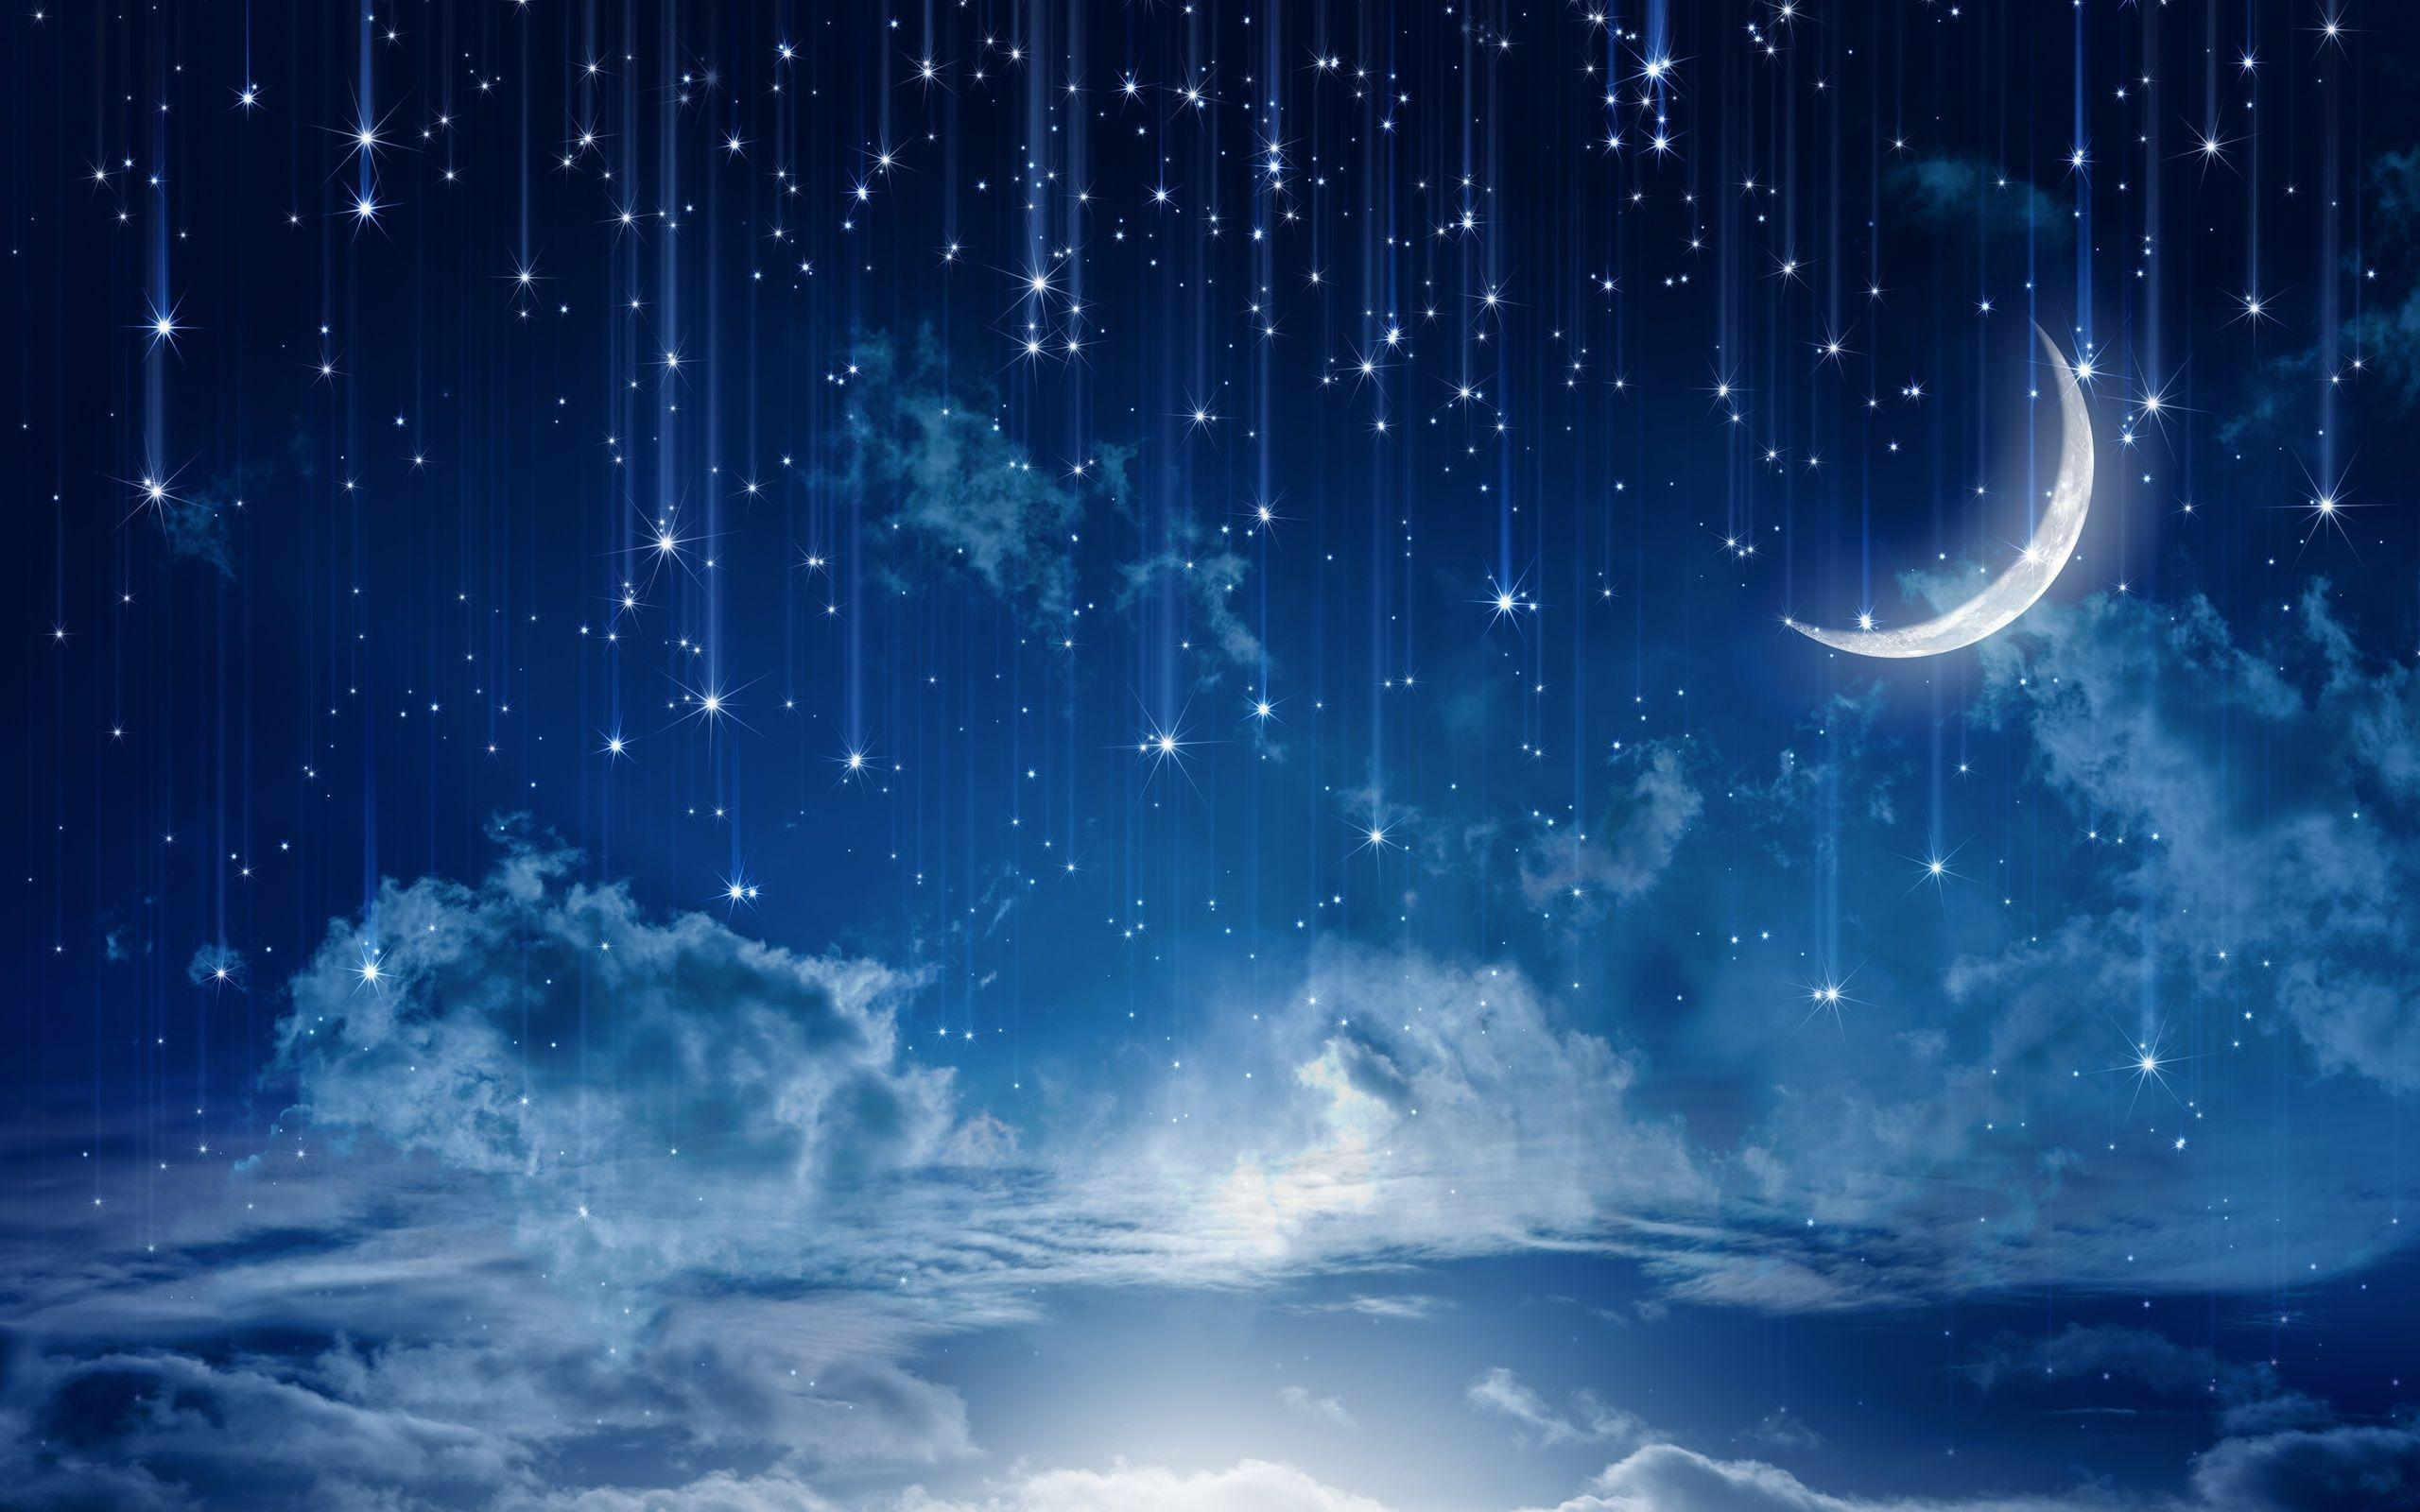 Night sky stars wallpapers wallpaper cave night moon wallpapers full hd wallpaper search voltagebd Images